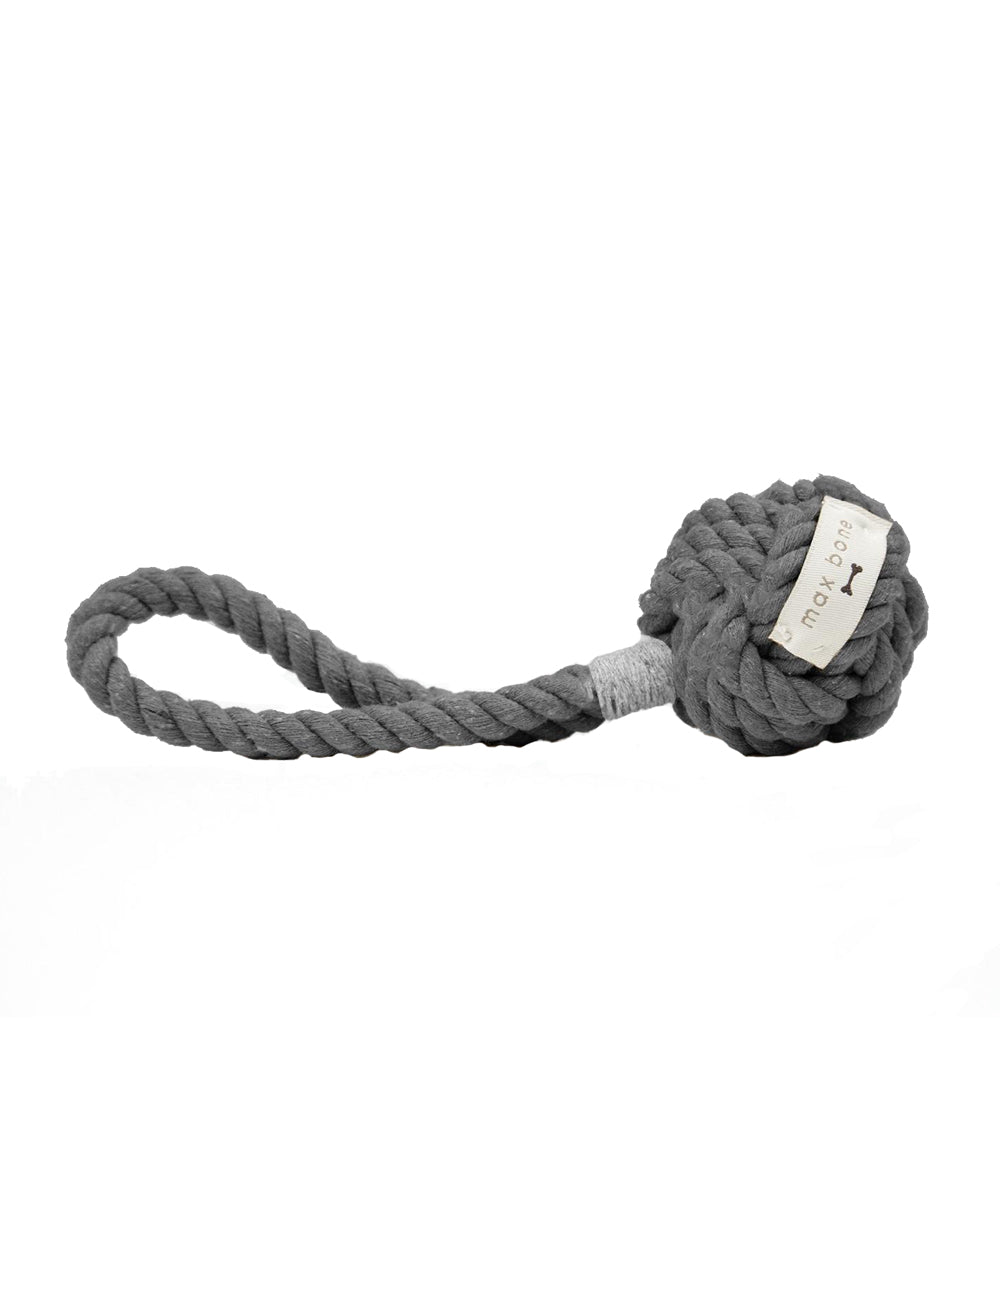 Mini Hobie Sun Rope Toy